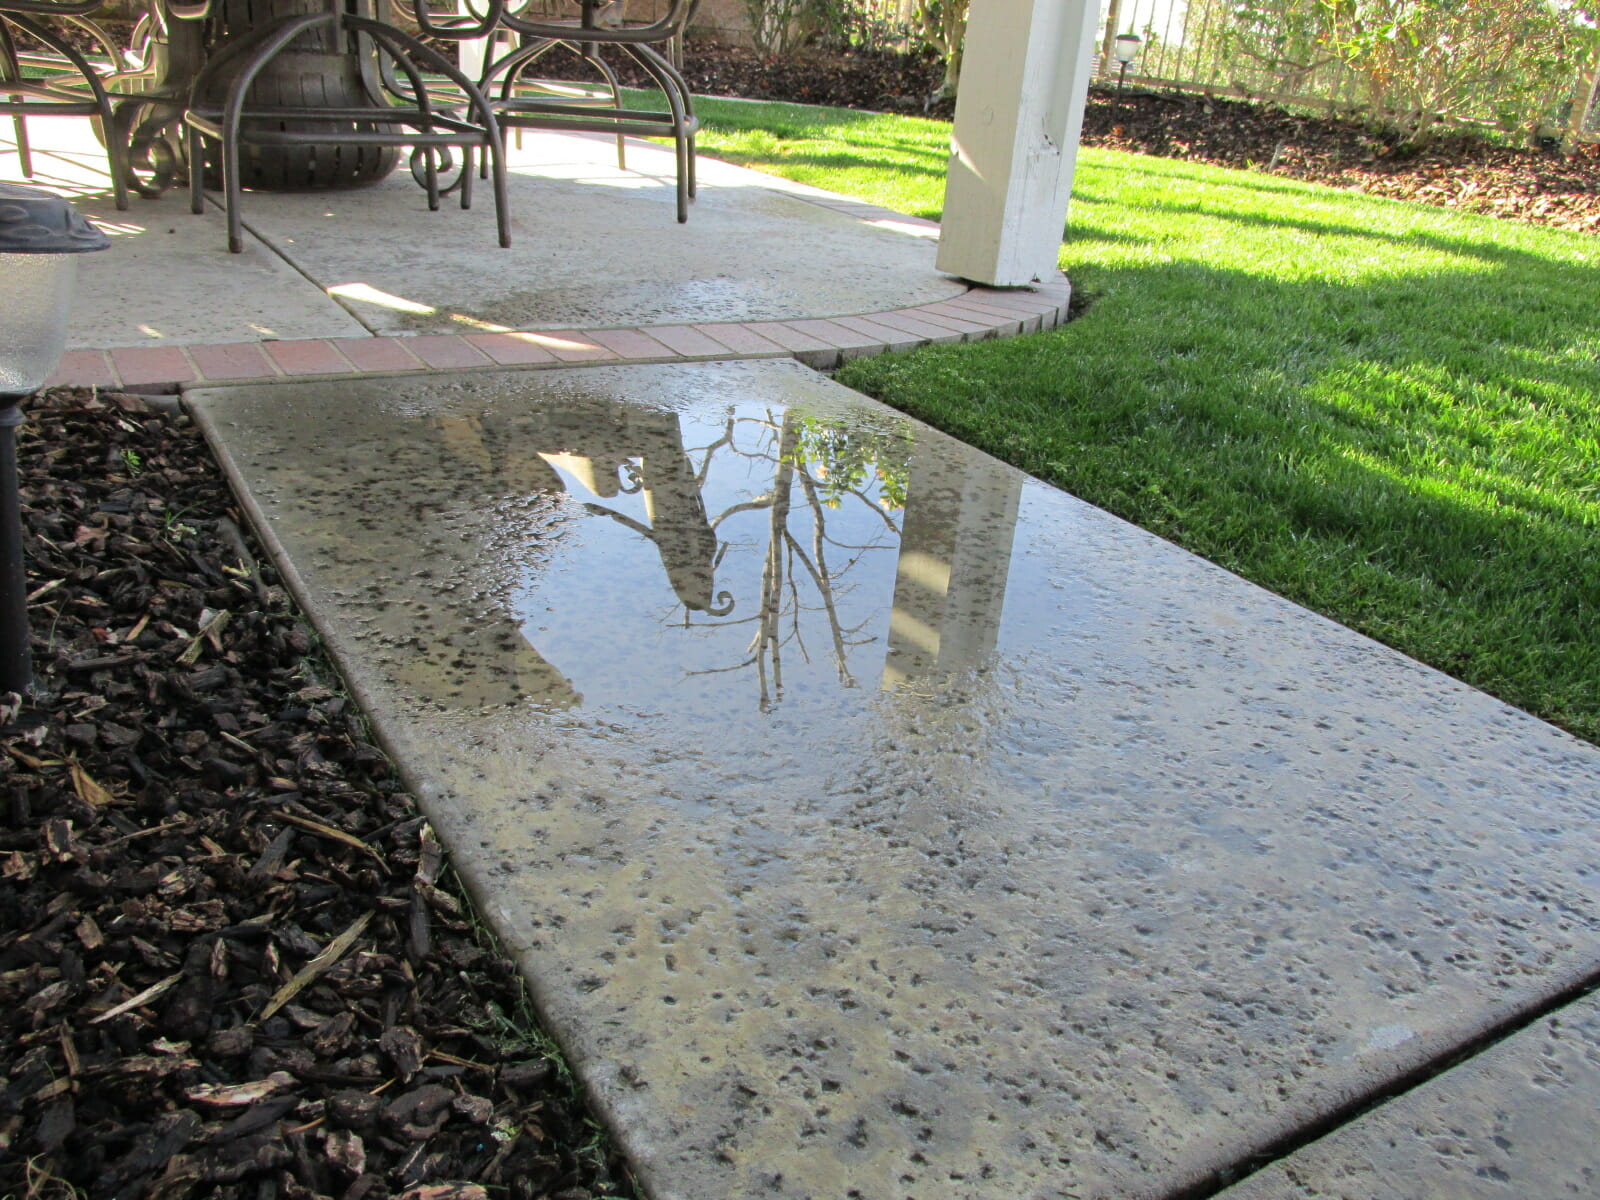 Puddling and Standing Water Patios Driveways Walks Buyers Ask